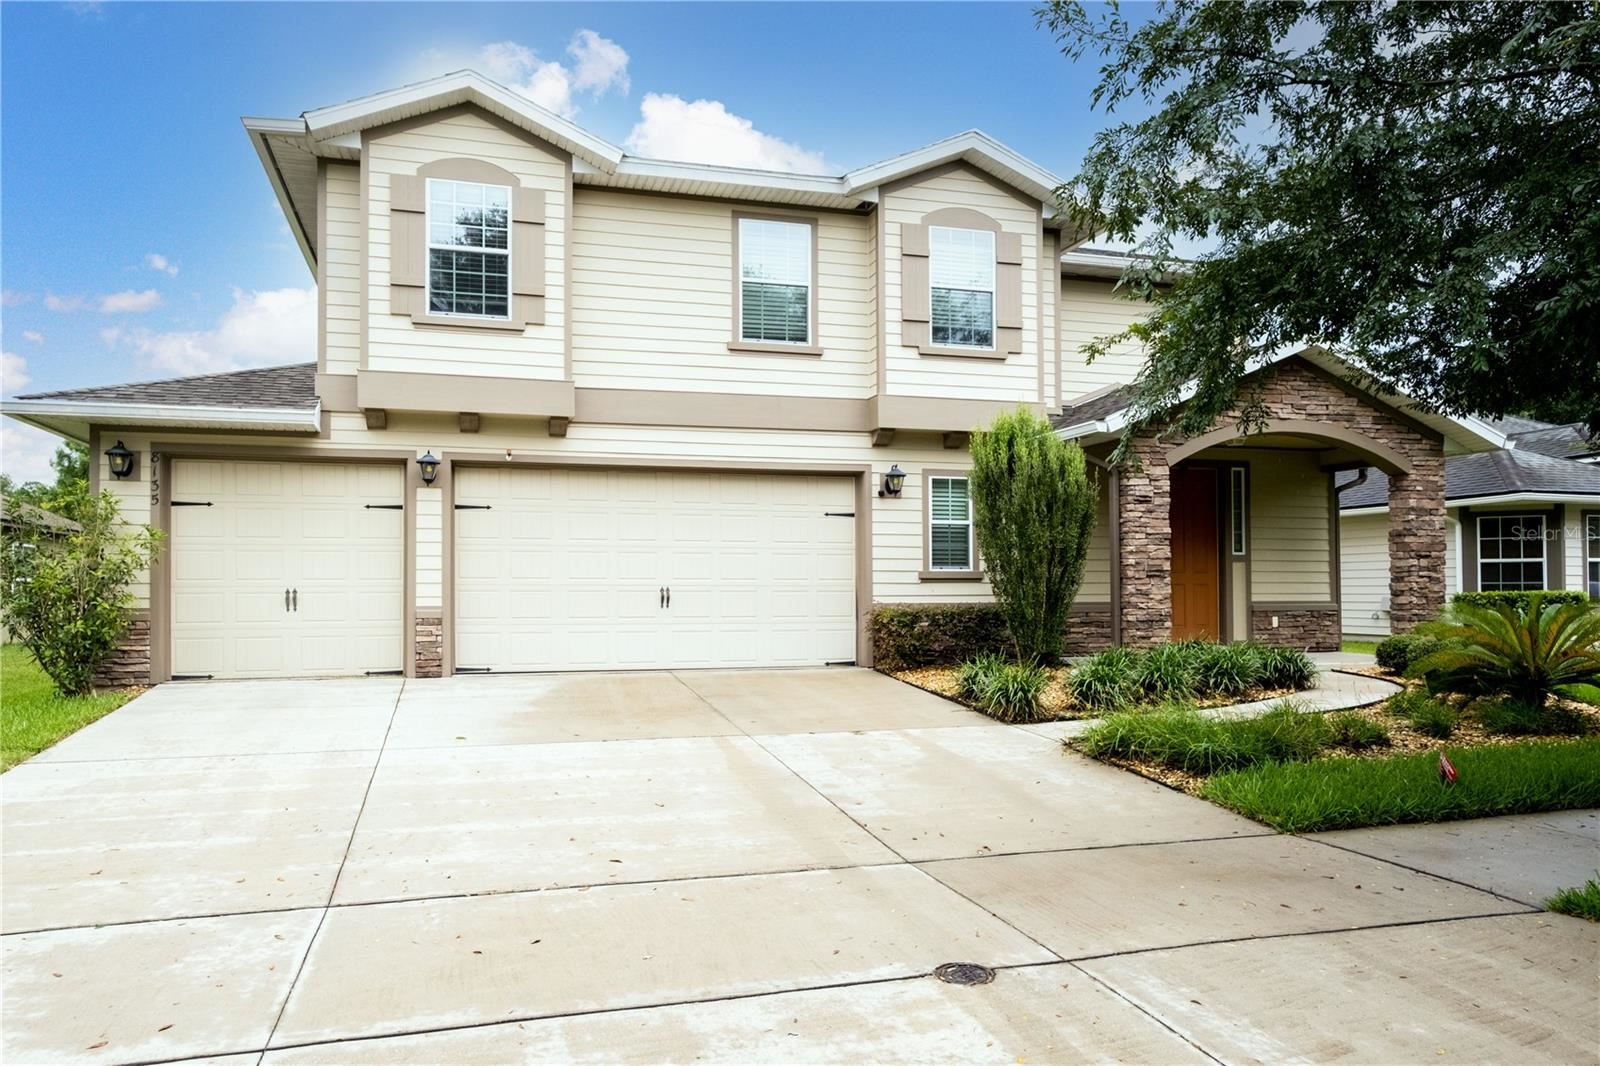 8135 NW 51ST DRIVE, Gainesville, FL 32653 - #: GC500162